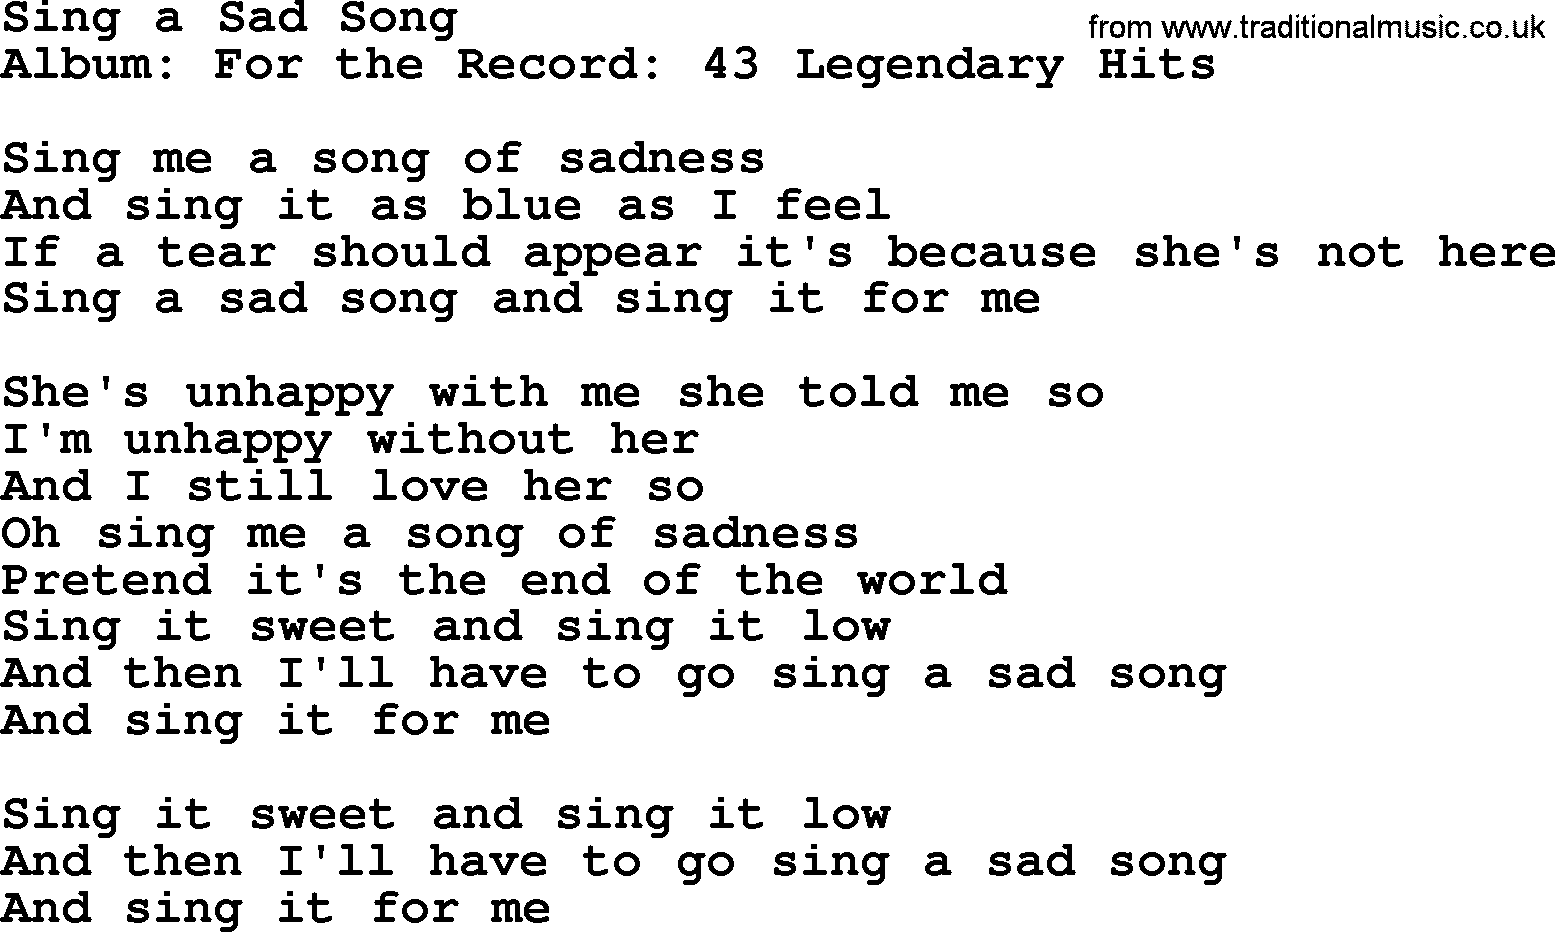 Sing A Sad Song by Merle Haggard - lyrics Sad Lyrics